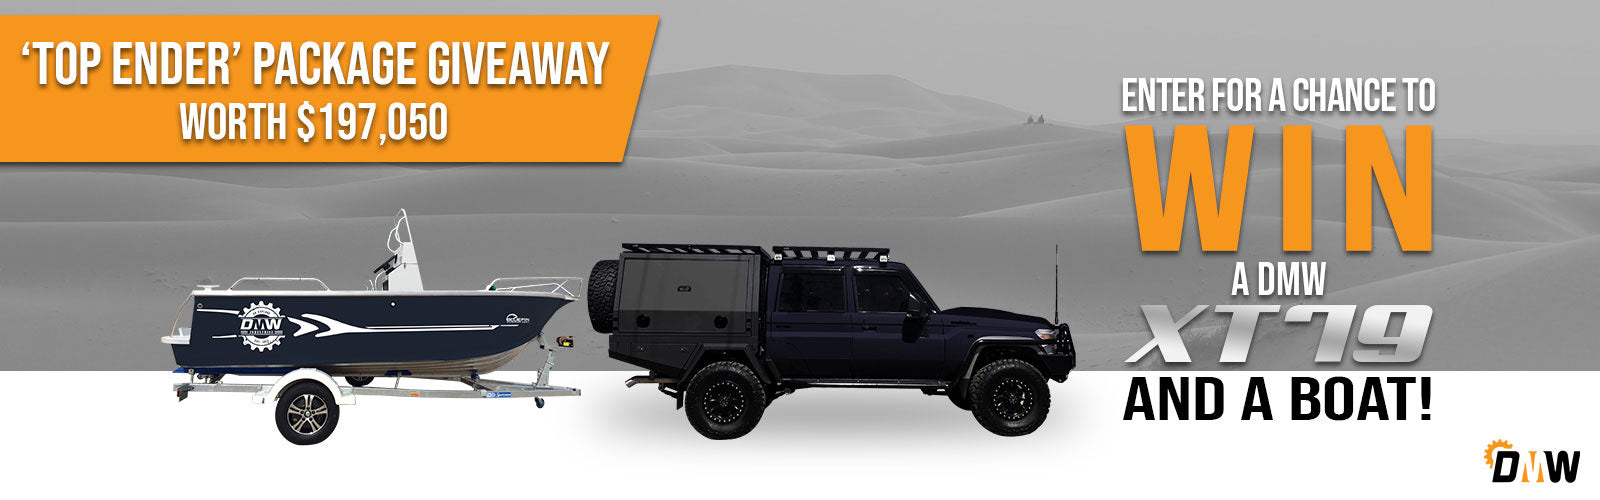 Enter for a chance to win a DMW XT79 and a boat! Top Ender Package Giveaway worth $197,050